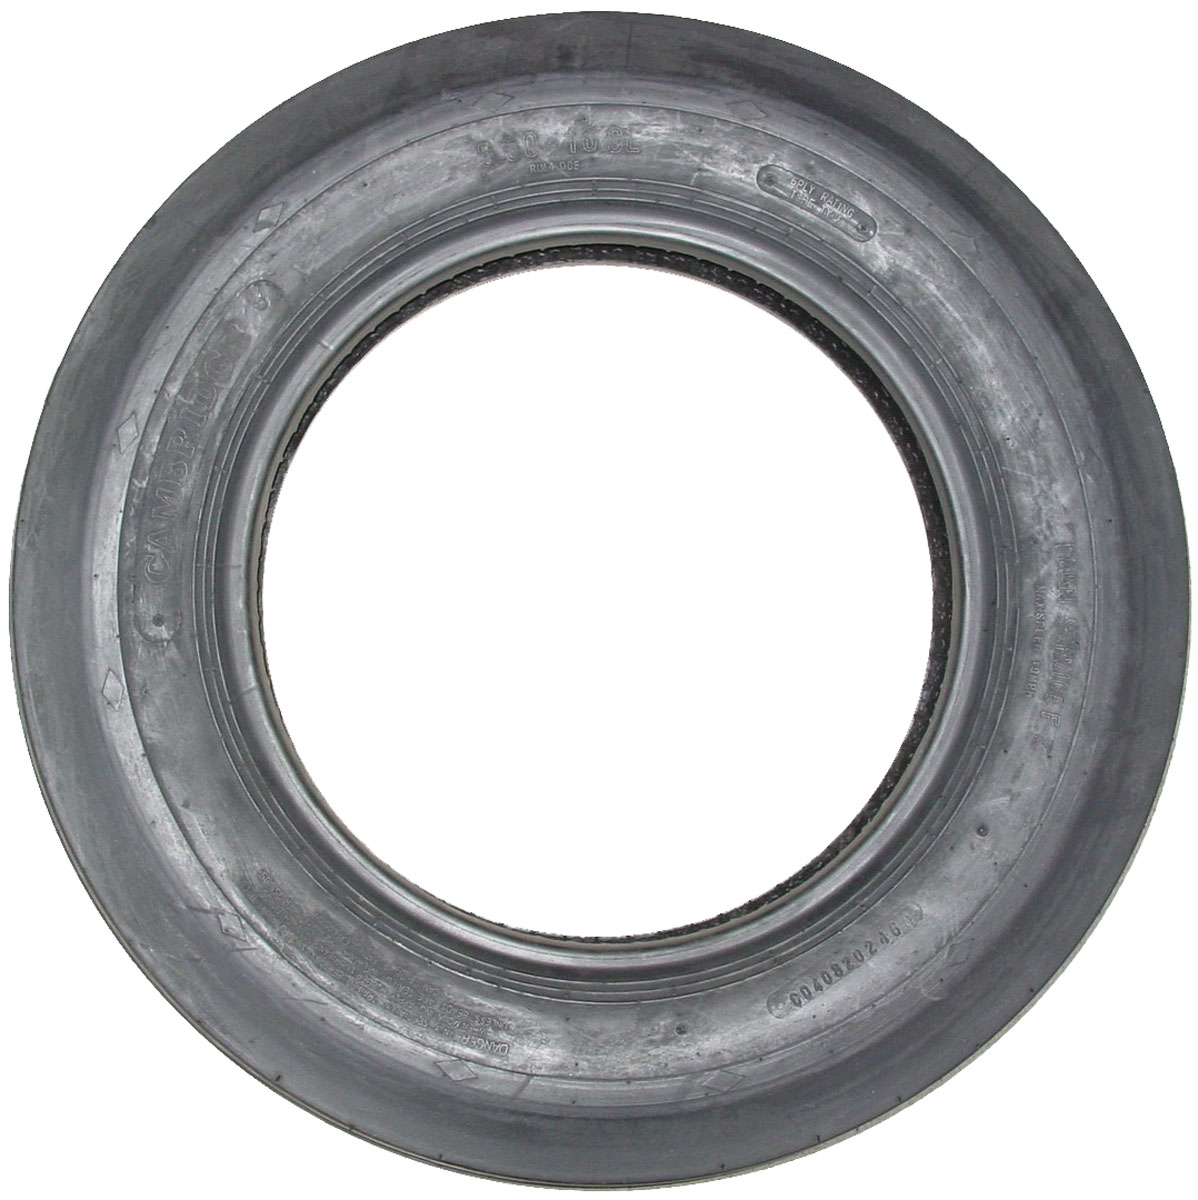 Tire only 5.50 x 16